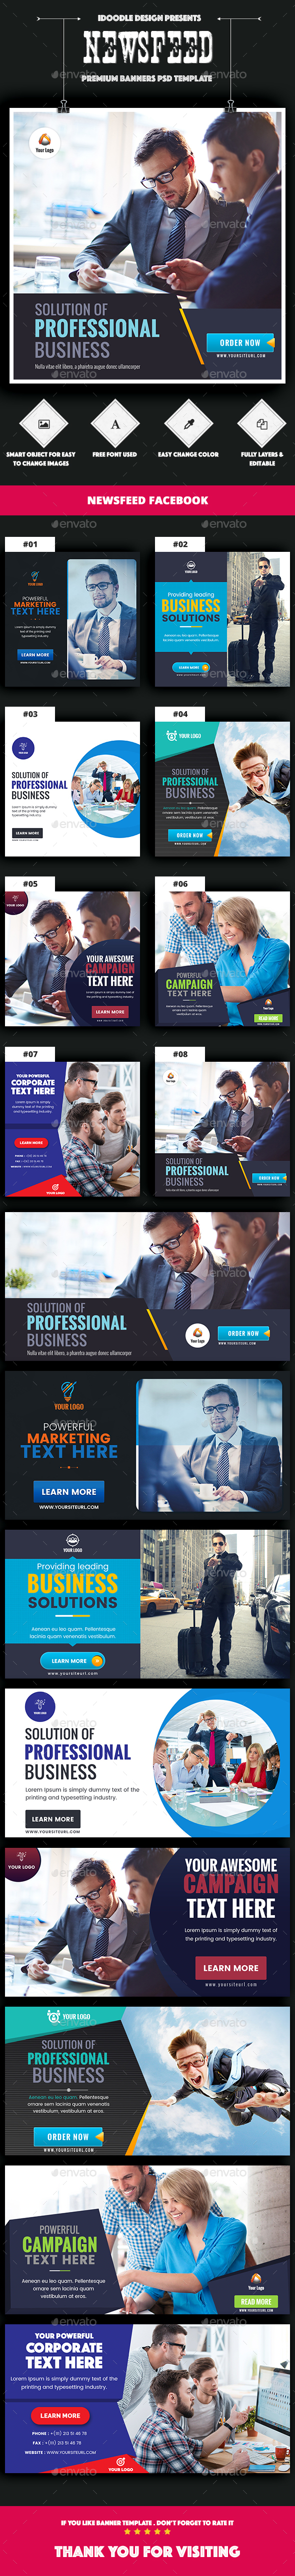 NewsFeed Multipurpose Banner Ads - 16 PSD [02 Size Each] - Banners & Ads Web Elements